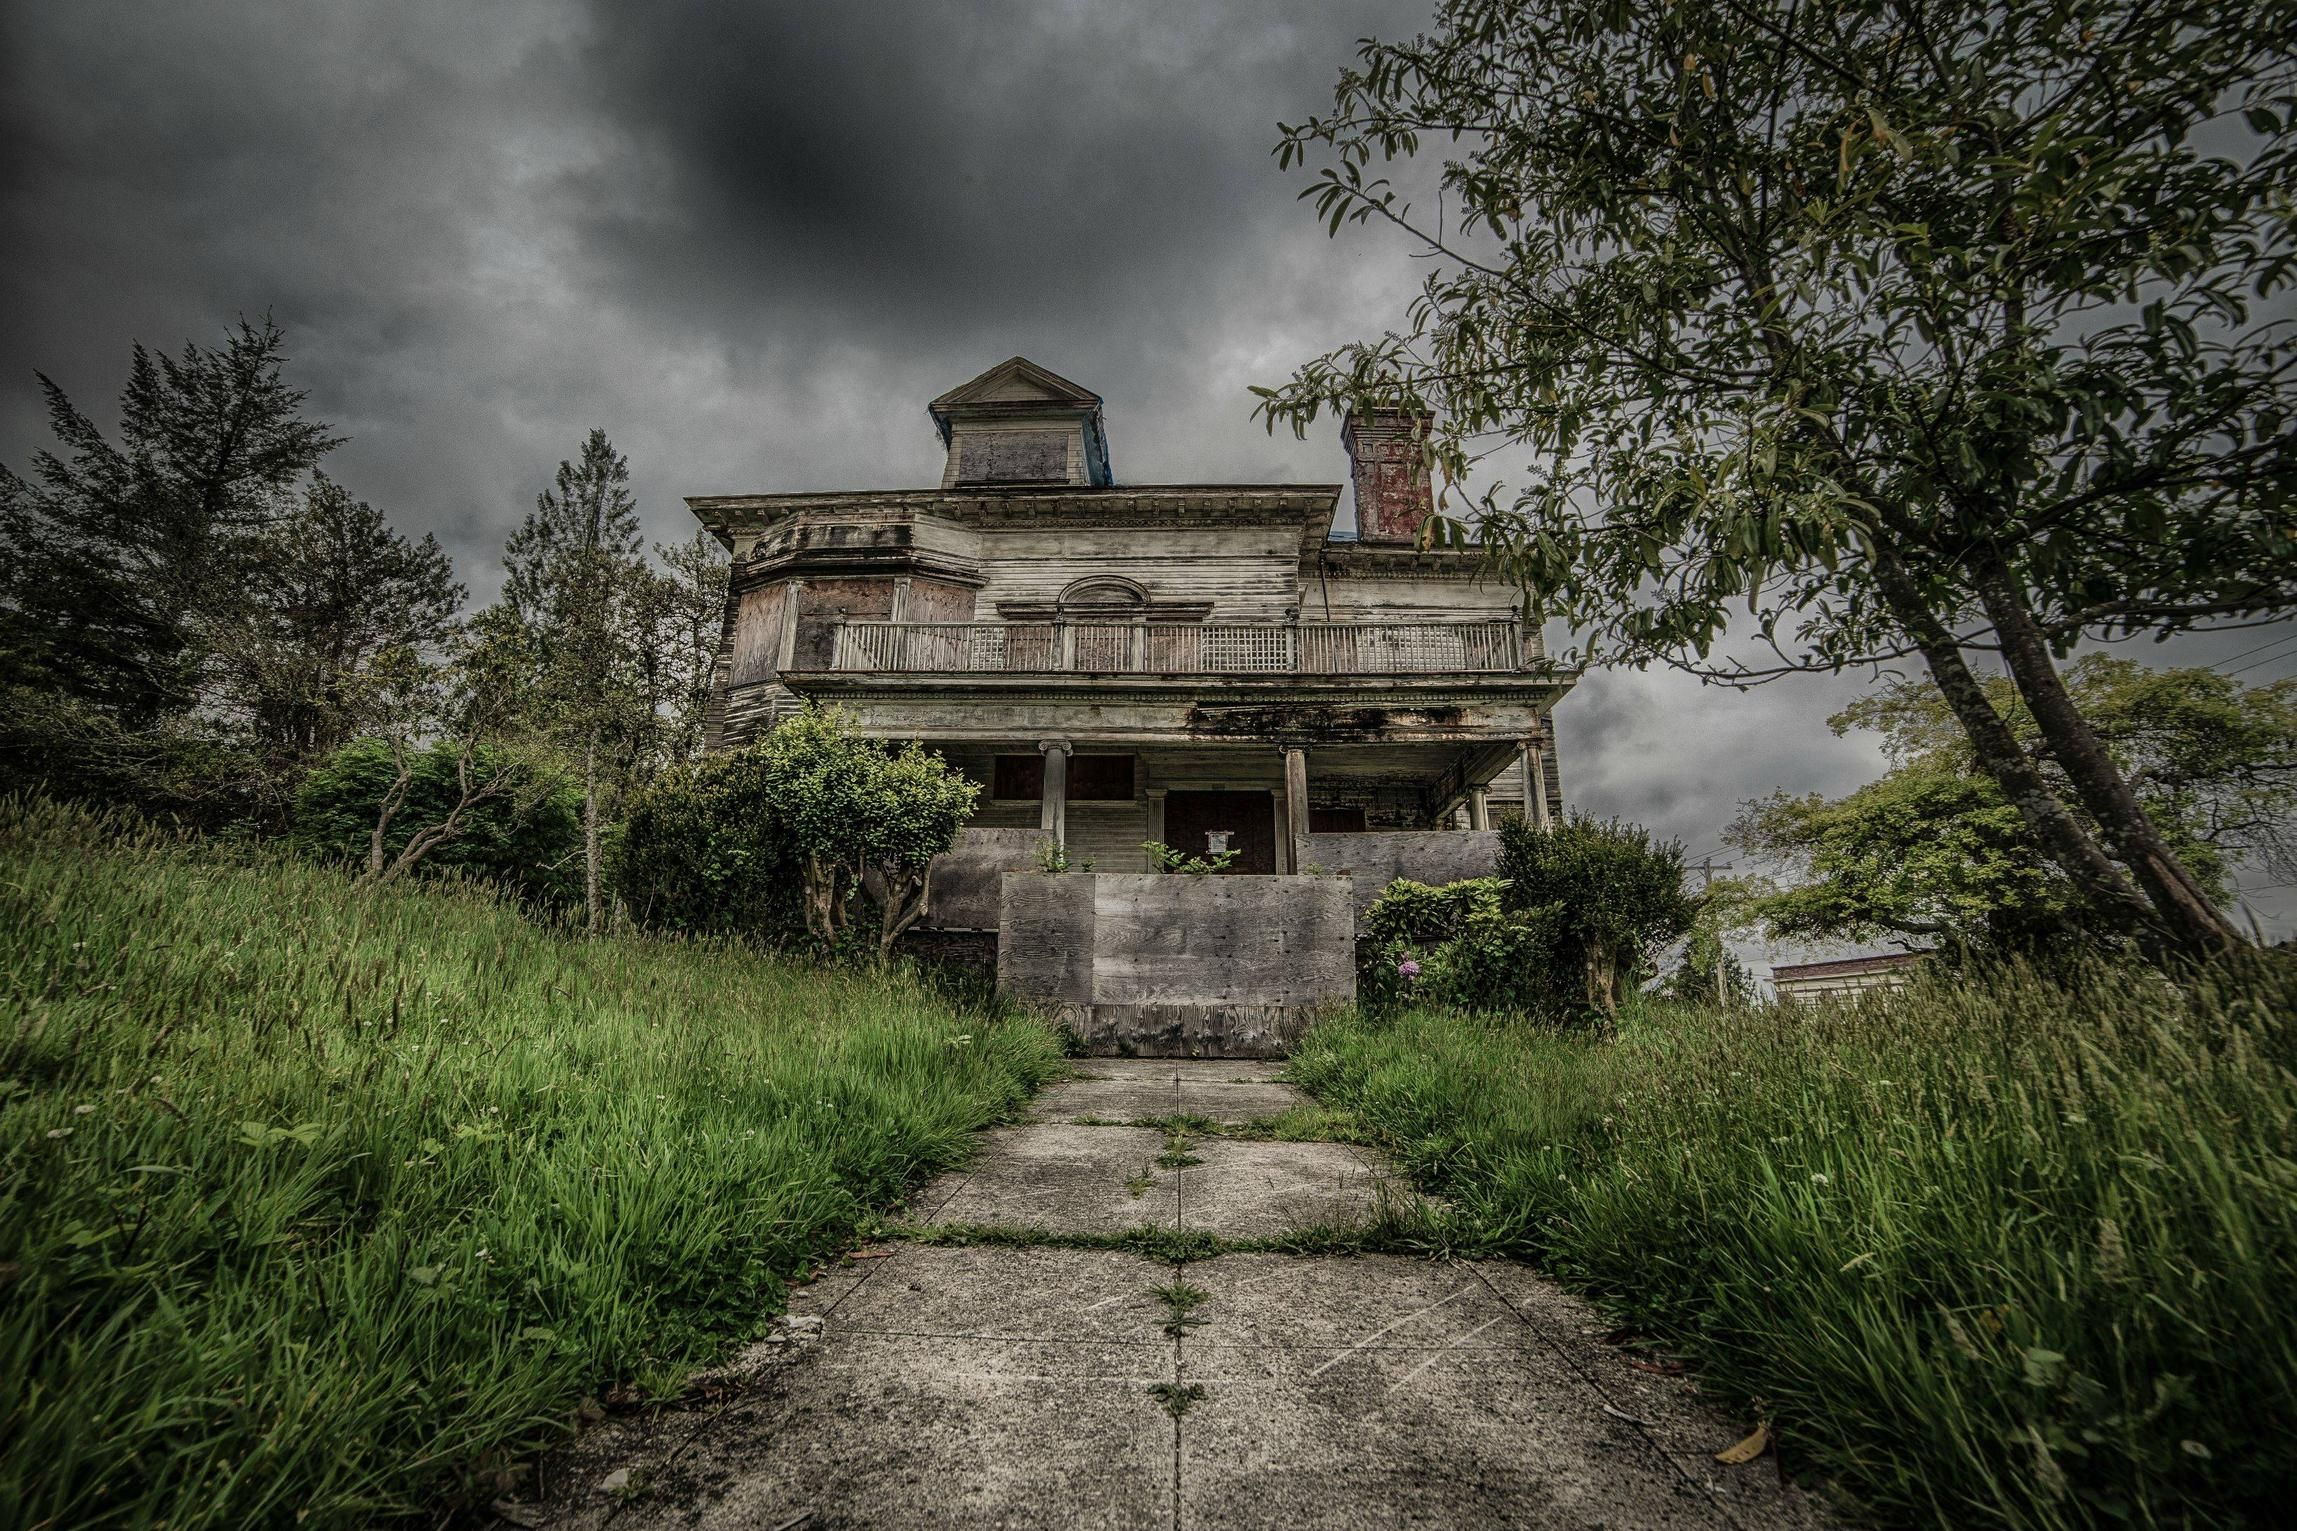 oregon abandoned places astoria buildings houses mansions creepy downright awesome haunted homes spooky property towns ghost fraud forgotten comments abandonedporn